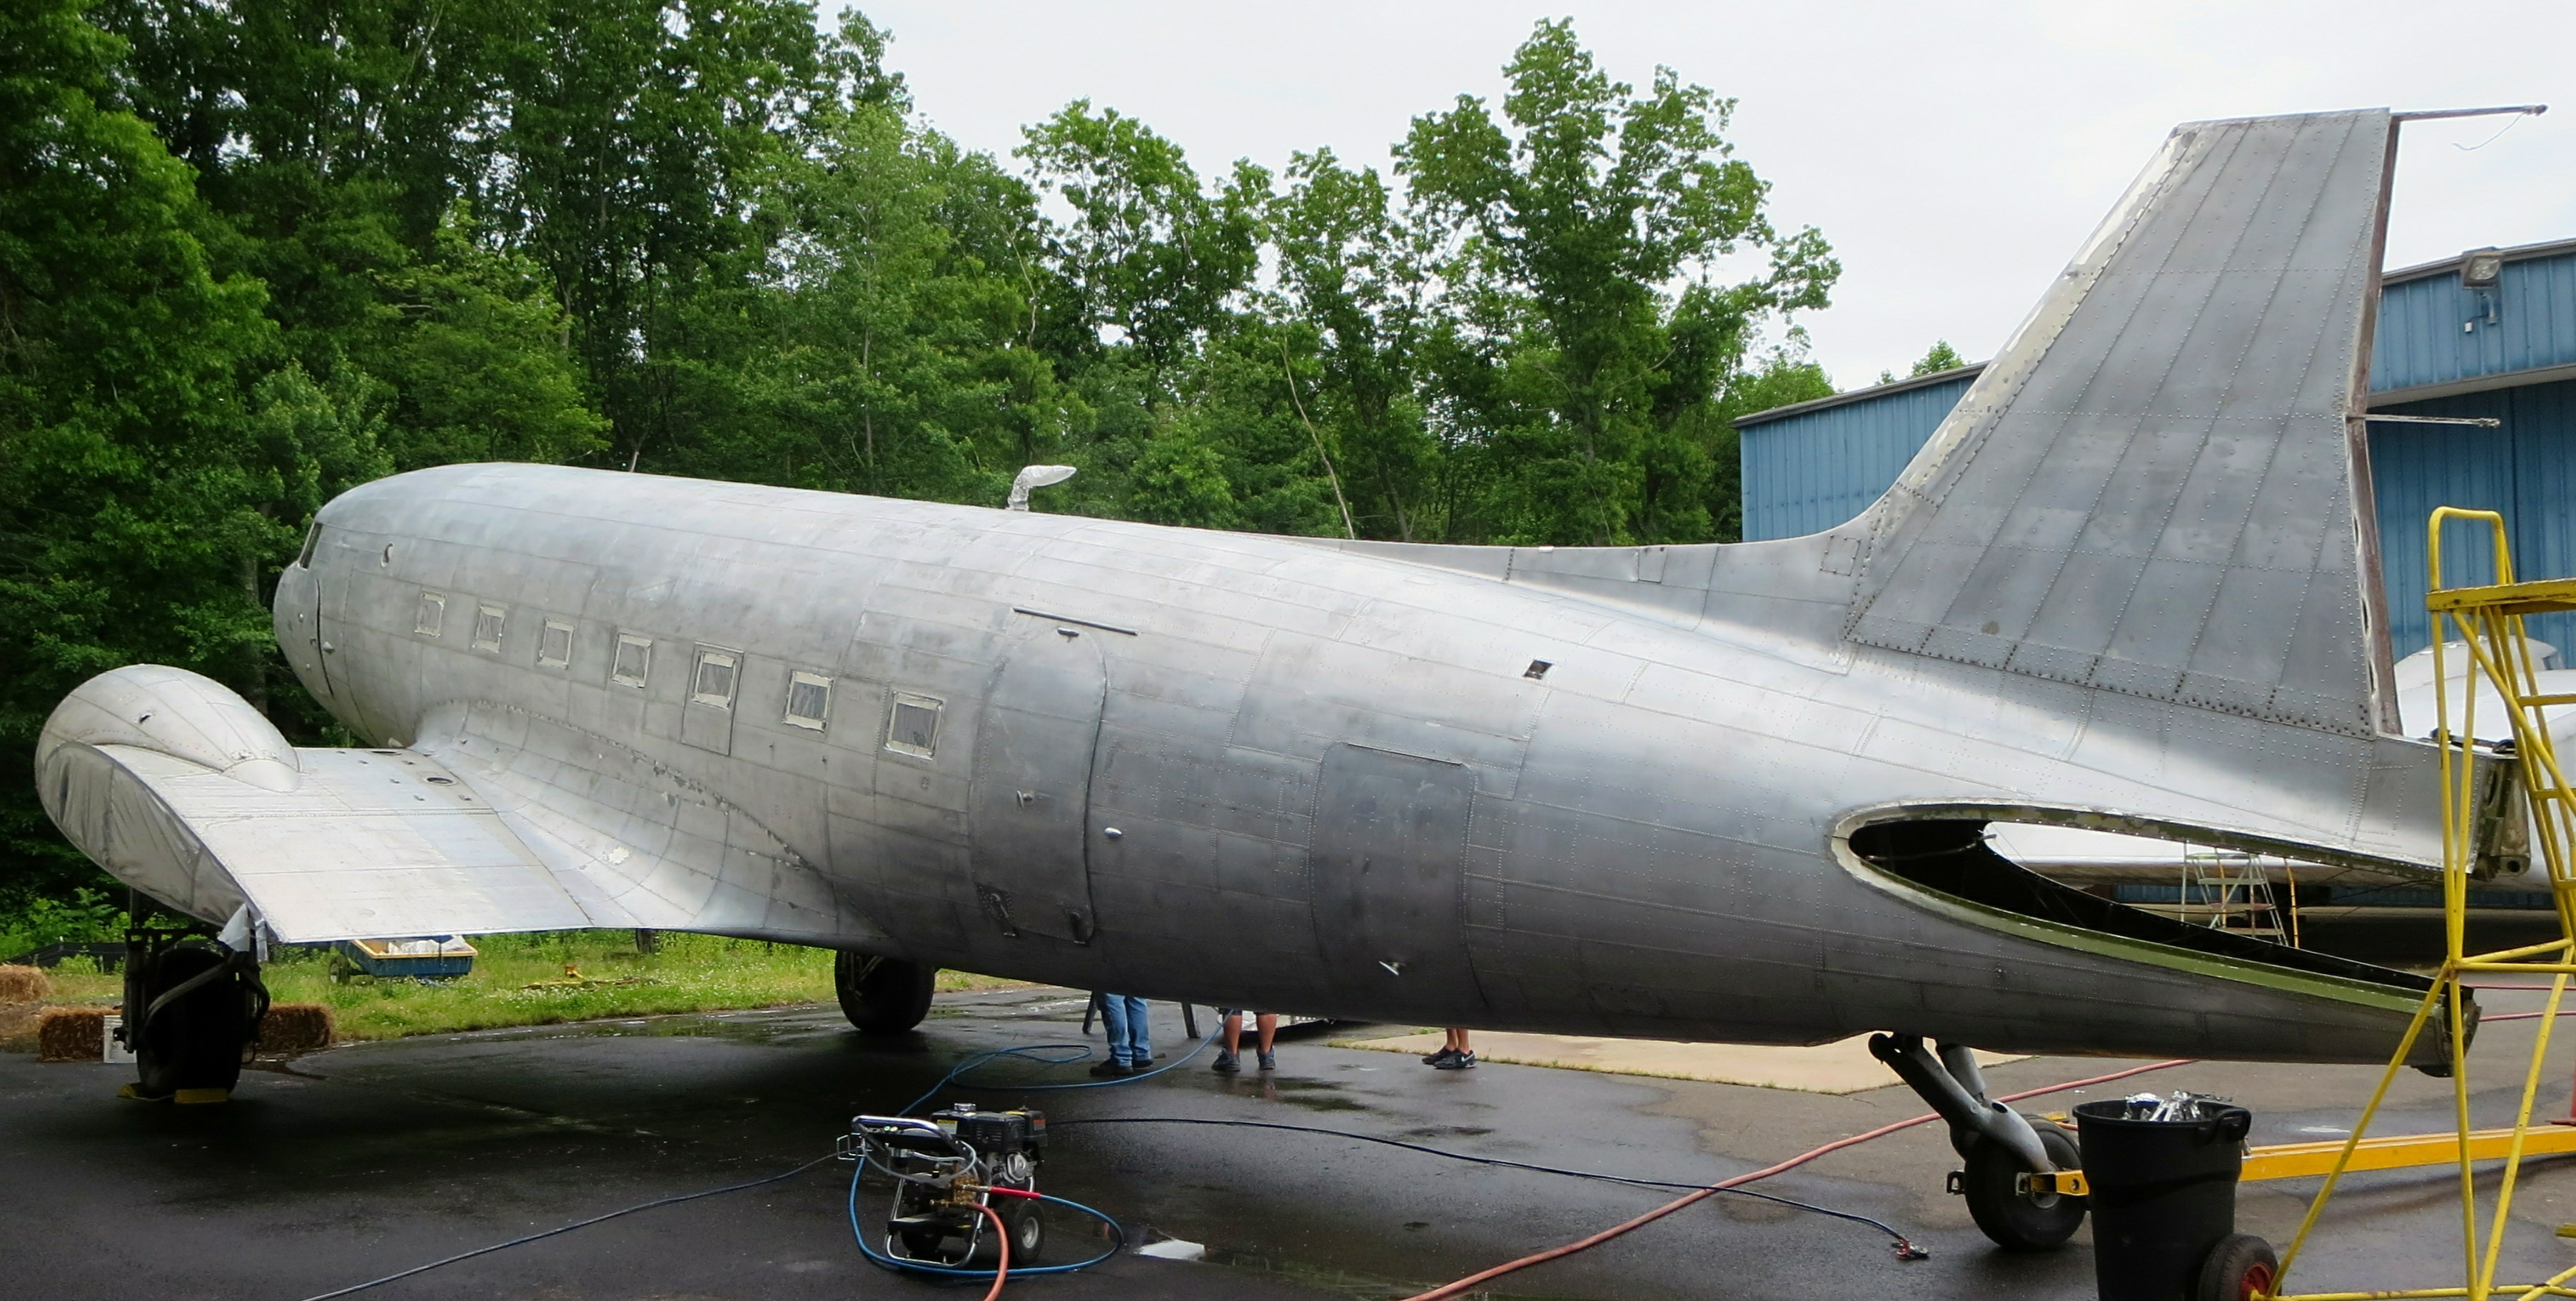 The DC-3 following paint stripping in 2014. (photo via NEAM)